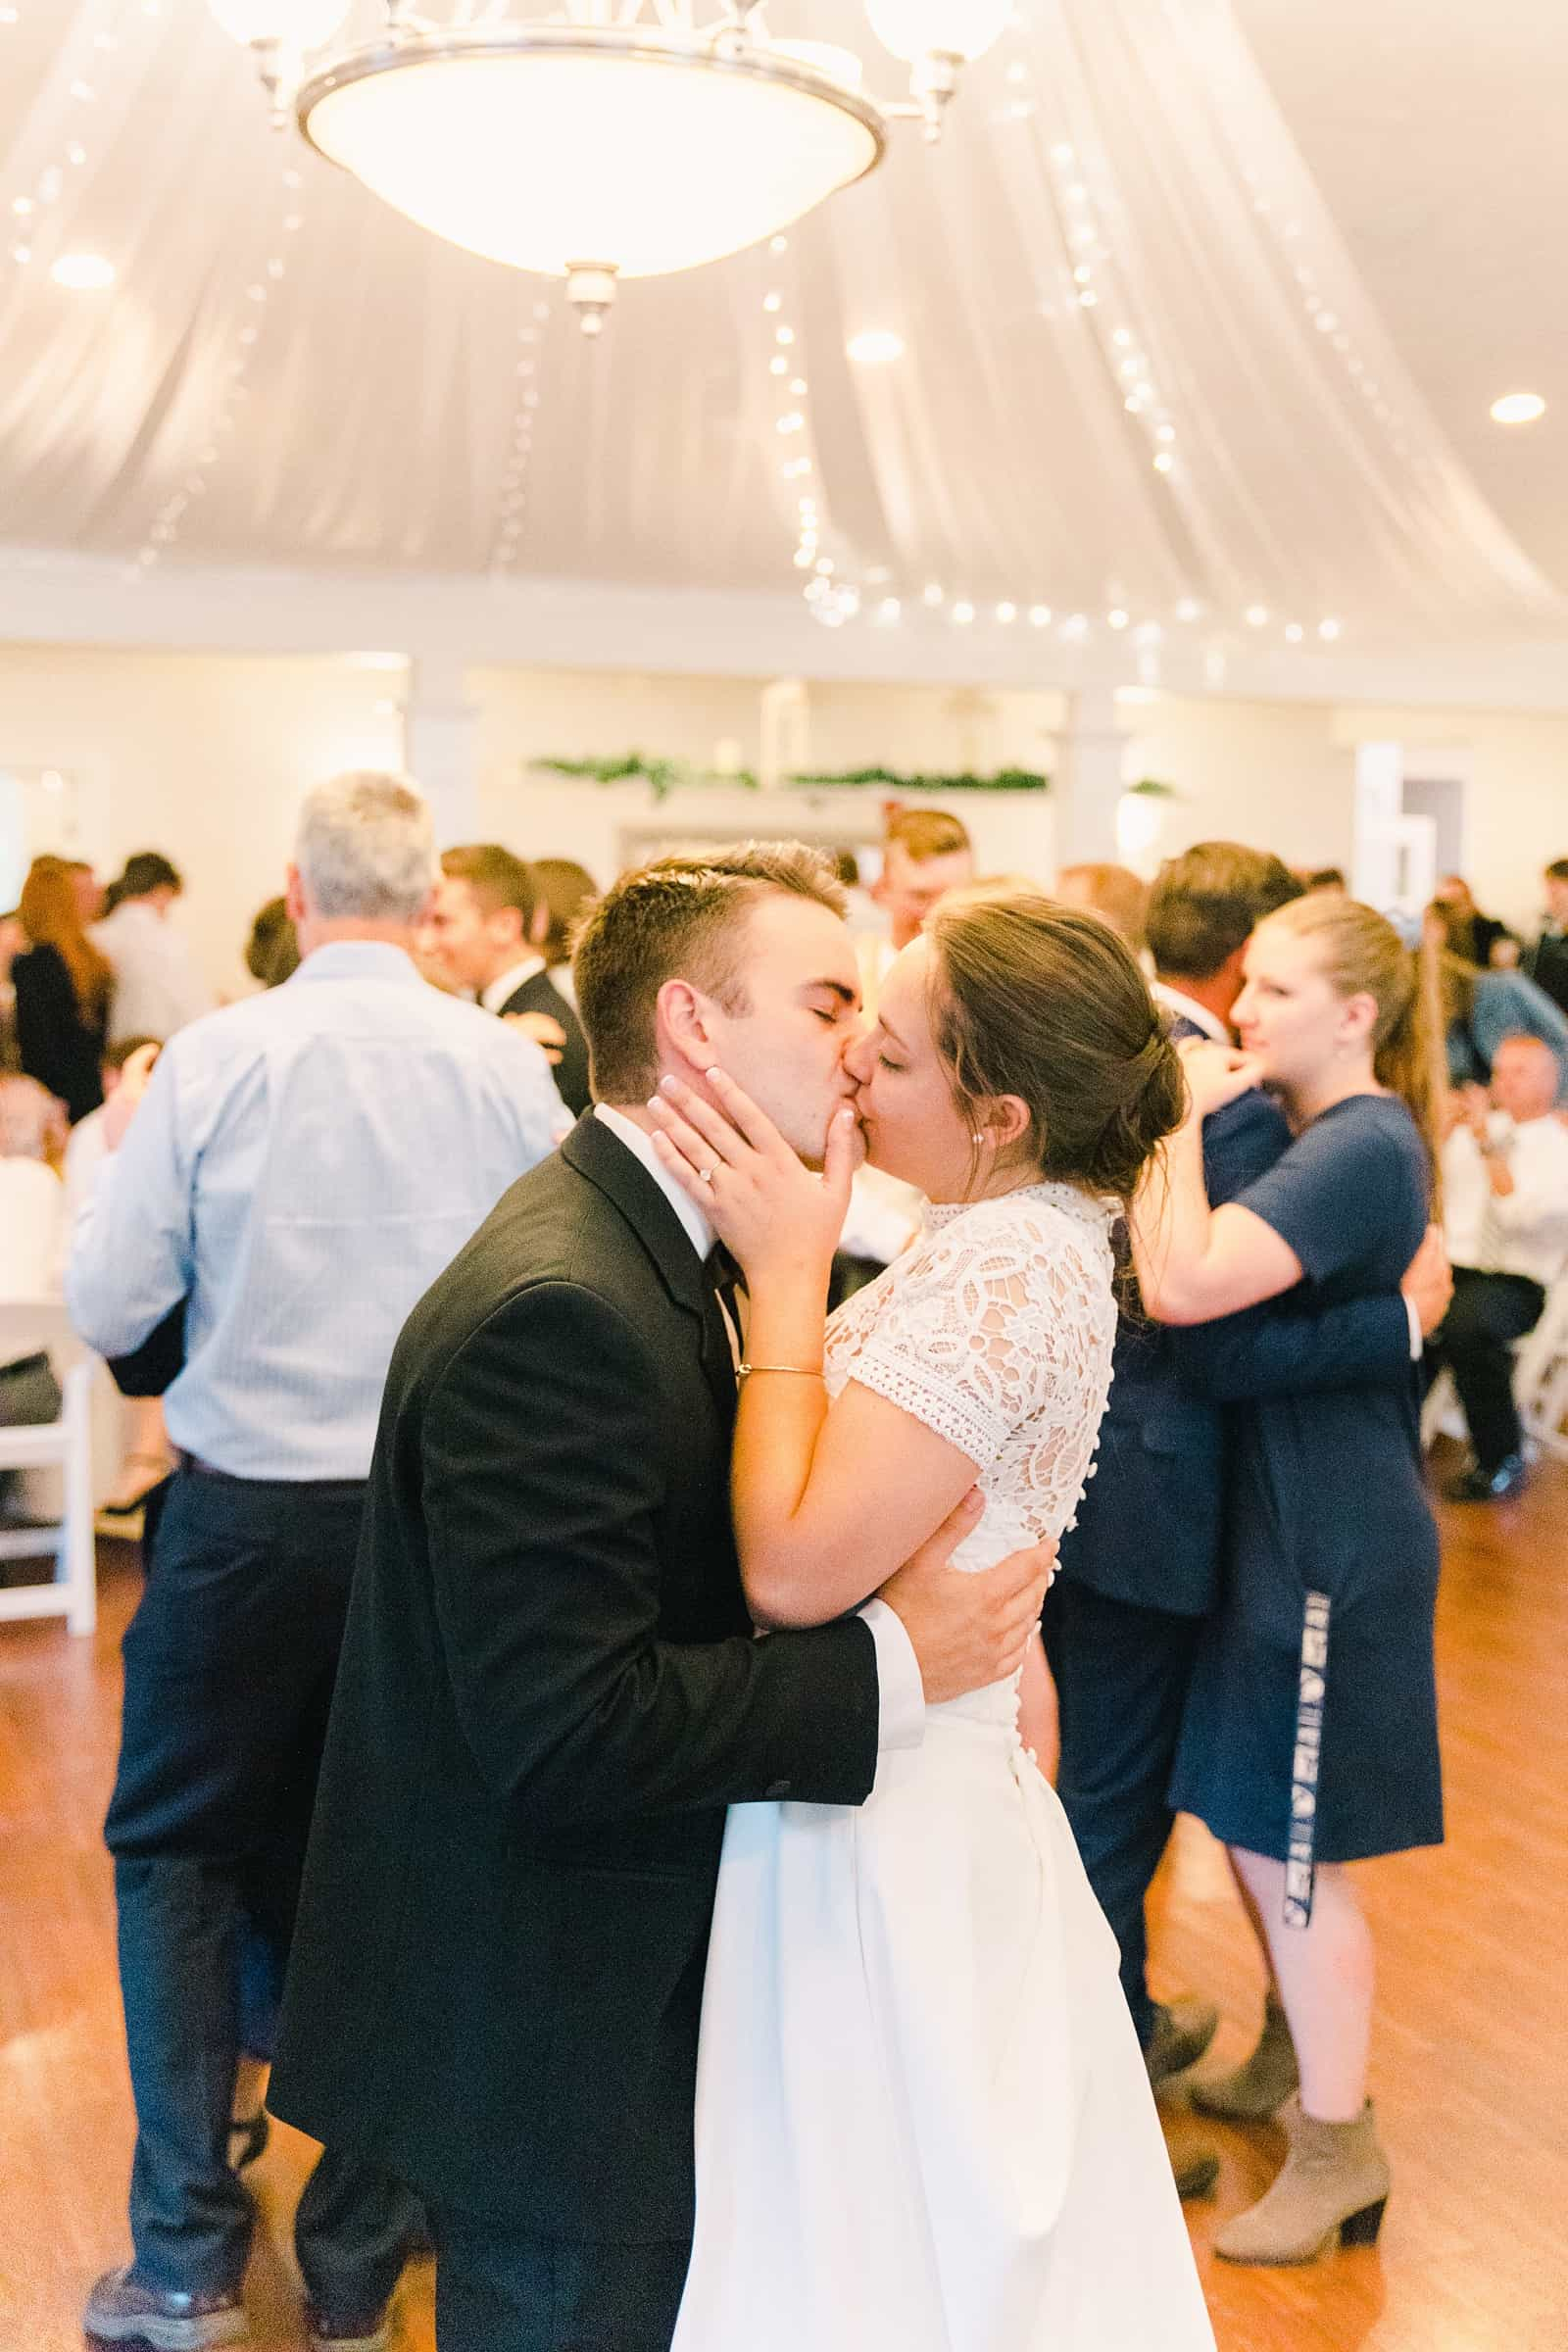 Clarion Gardens Payson Utah Wedding, bride and groom first dance kiss